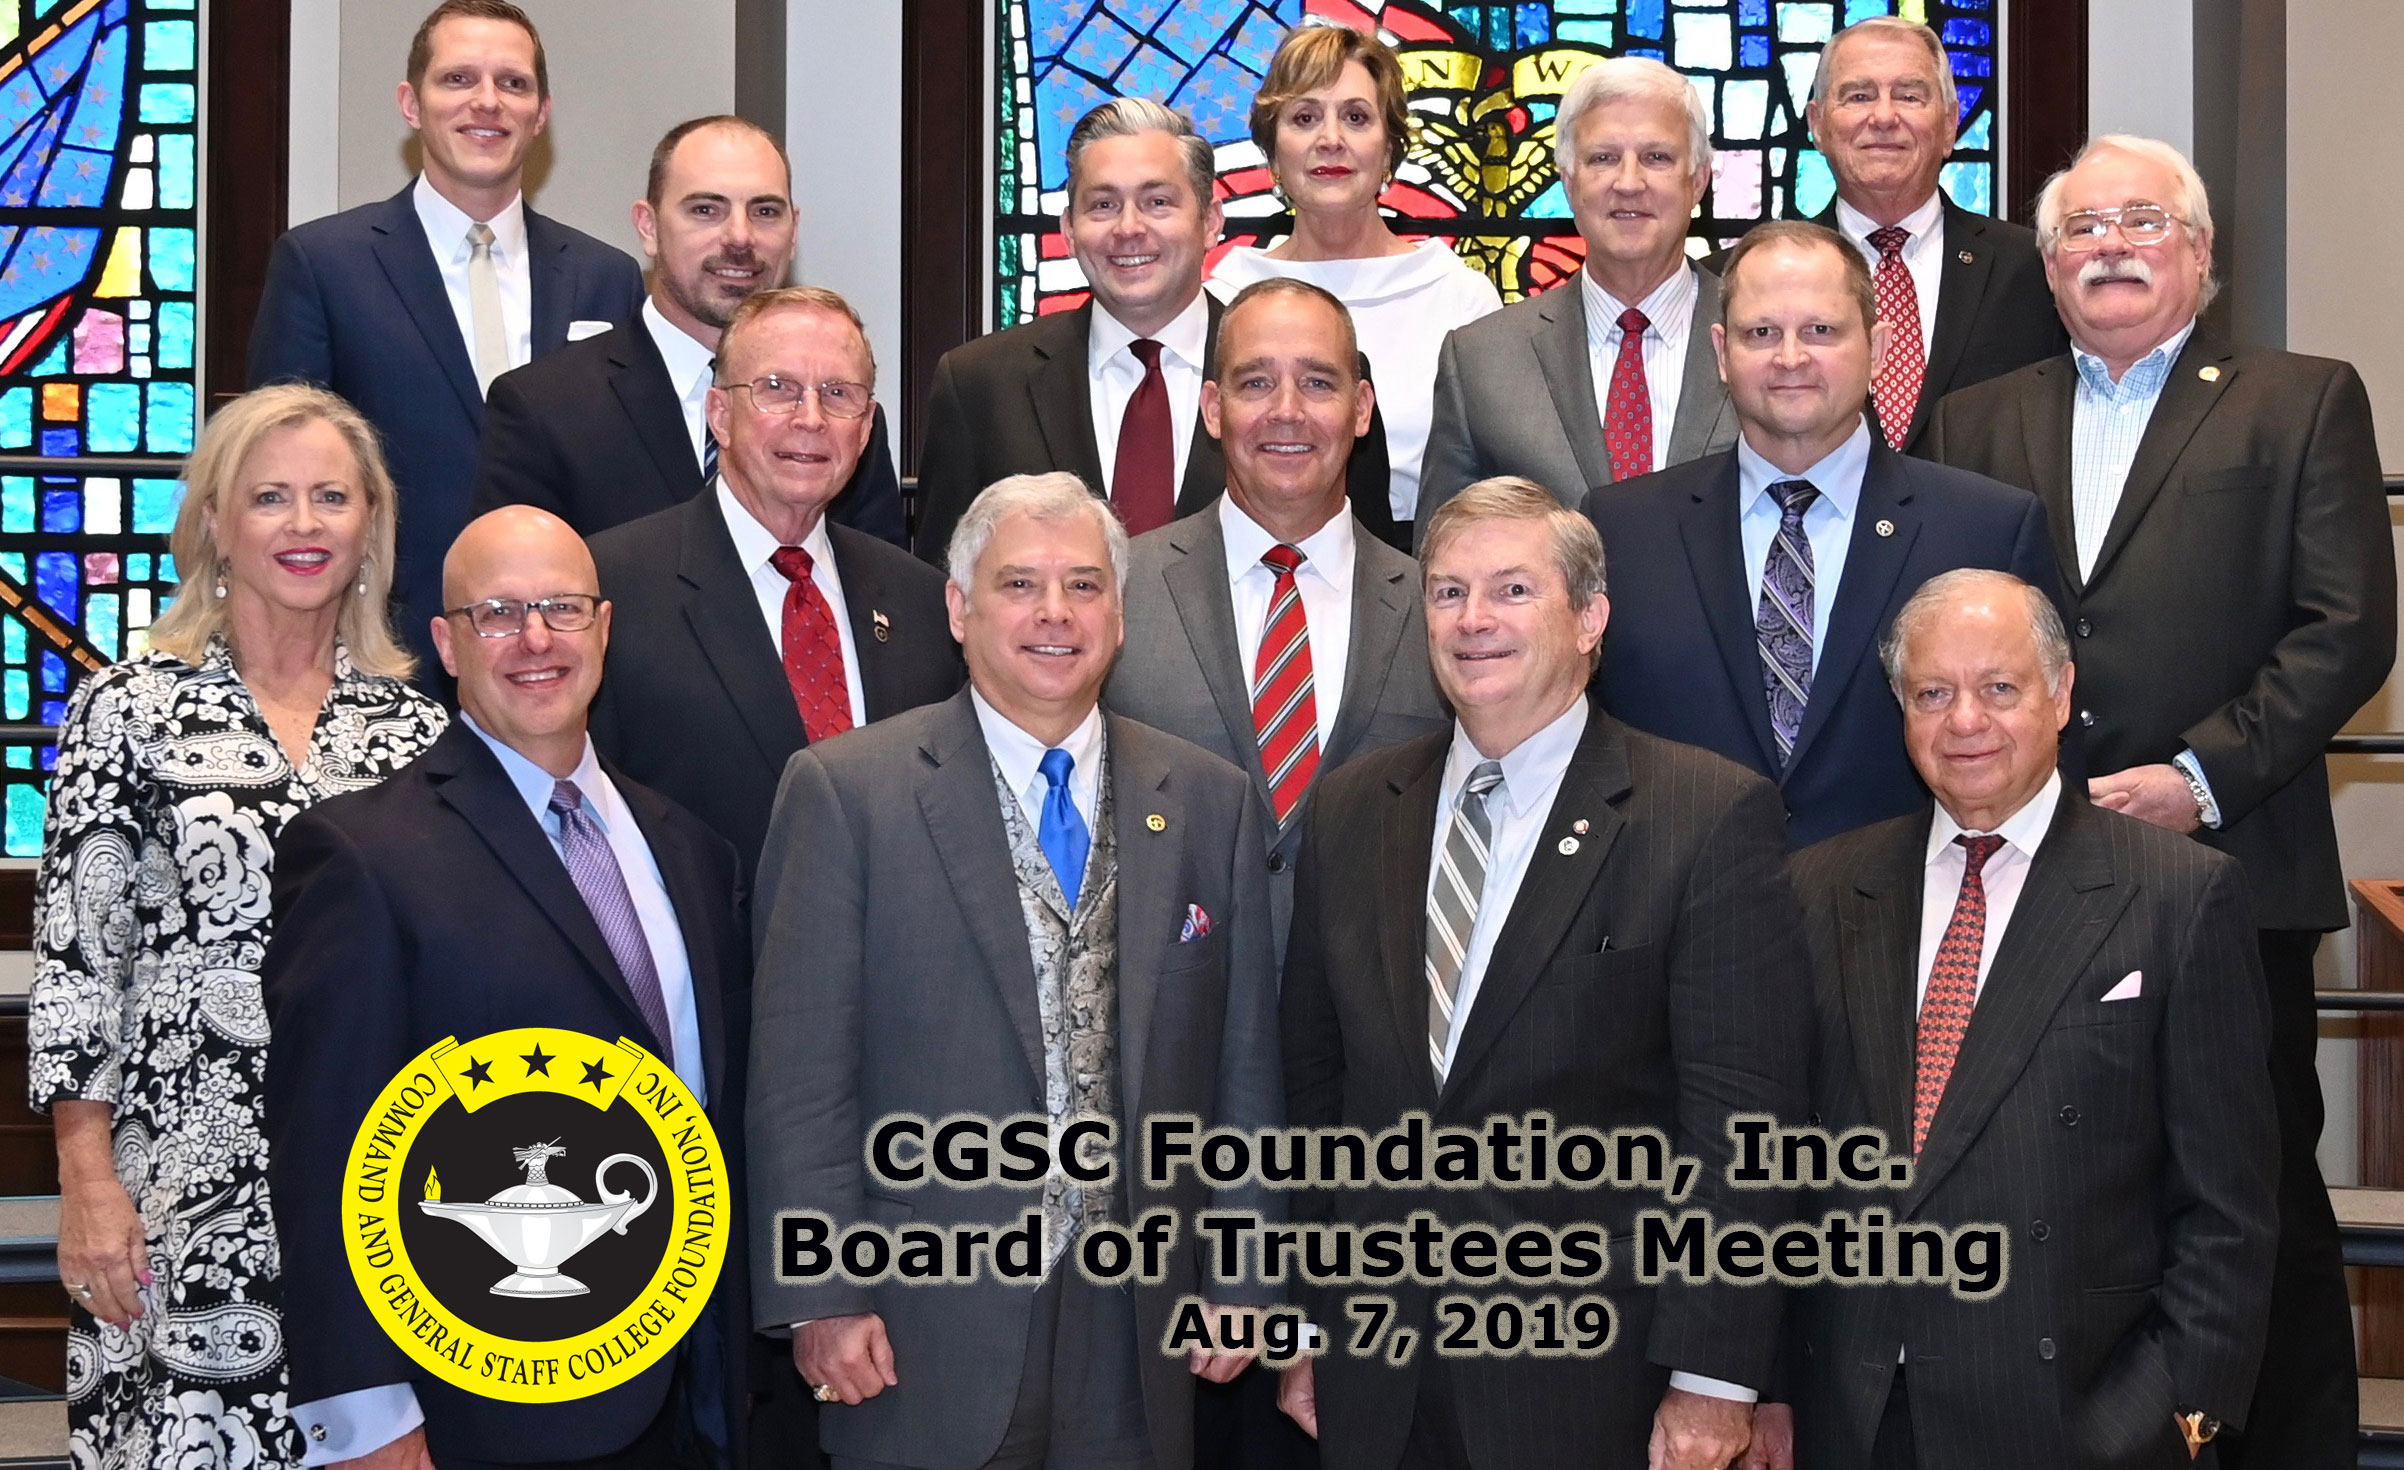 Photo of the CGSC Foundation board of trustees with chairman and president/ceo in the front row on Aug. 7, 2019.